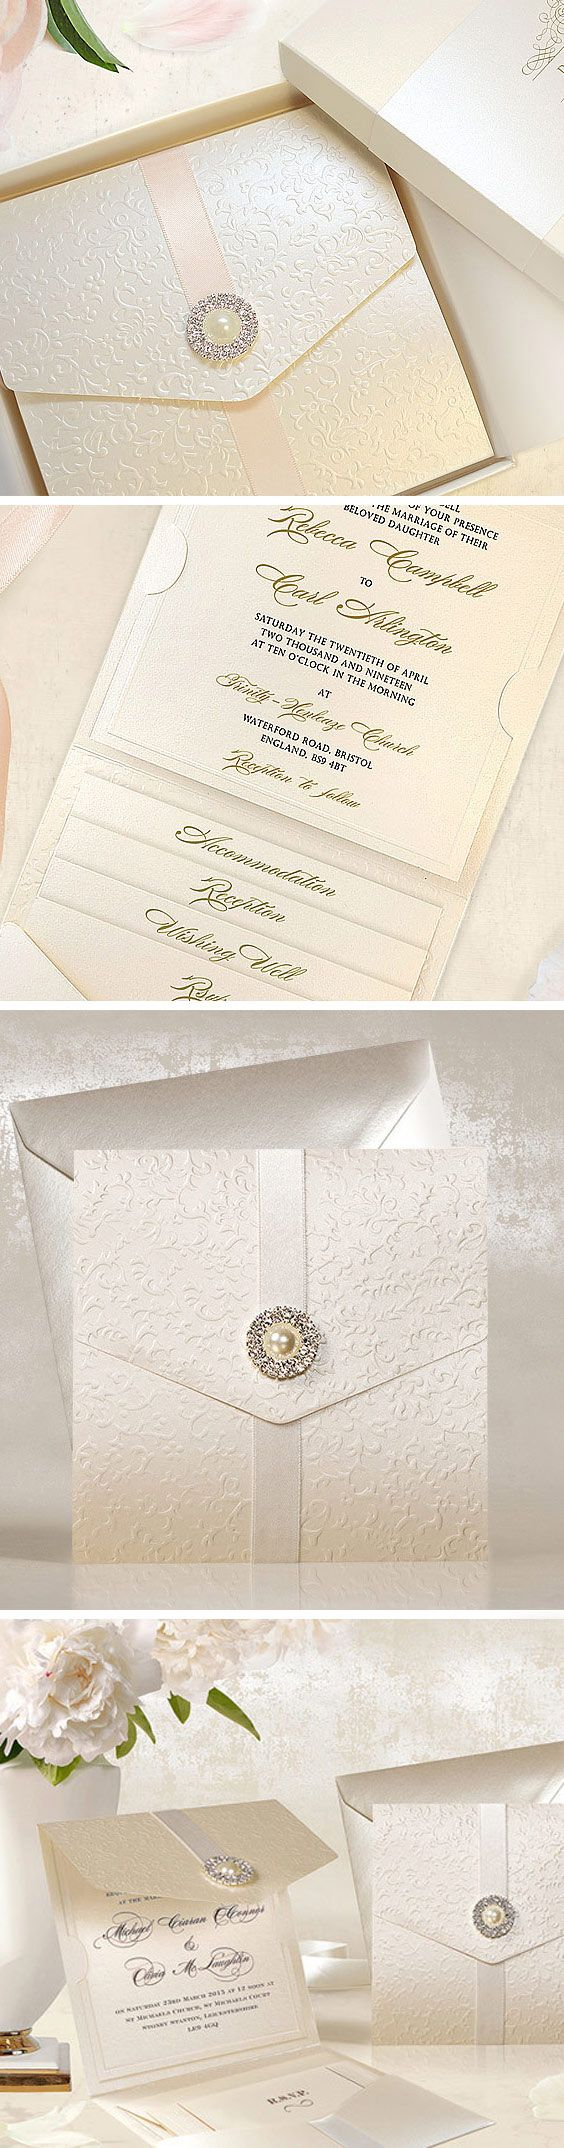 Ivory luxury wedding Invitations made of shimmer design card stock with the embossed brocade texture. The card is decorated with an exquisite brooch and elegant satin ribbon.